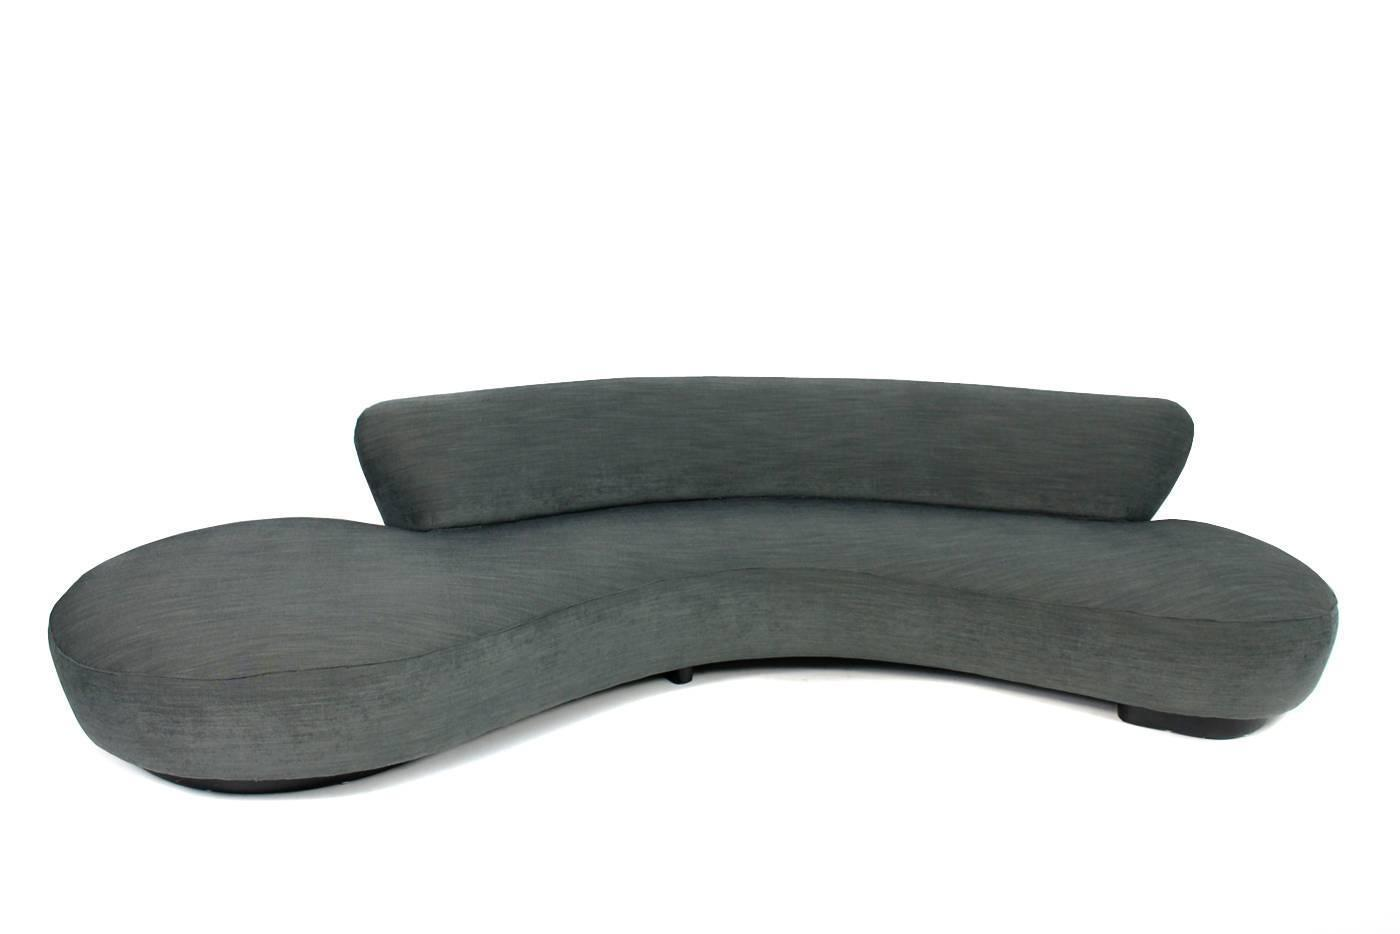 Iconic Serpentine Sofa Vladimir Kagan Circa 1980